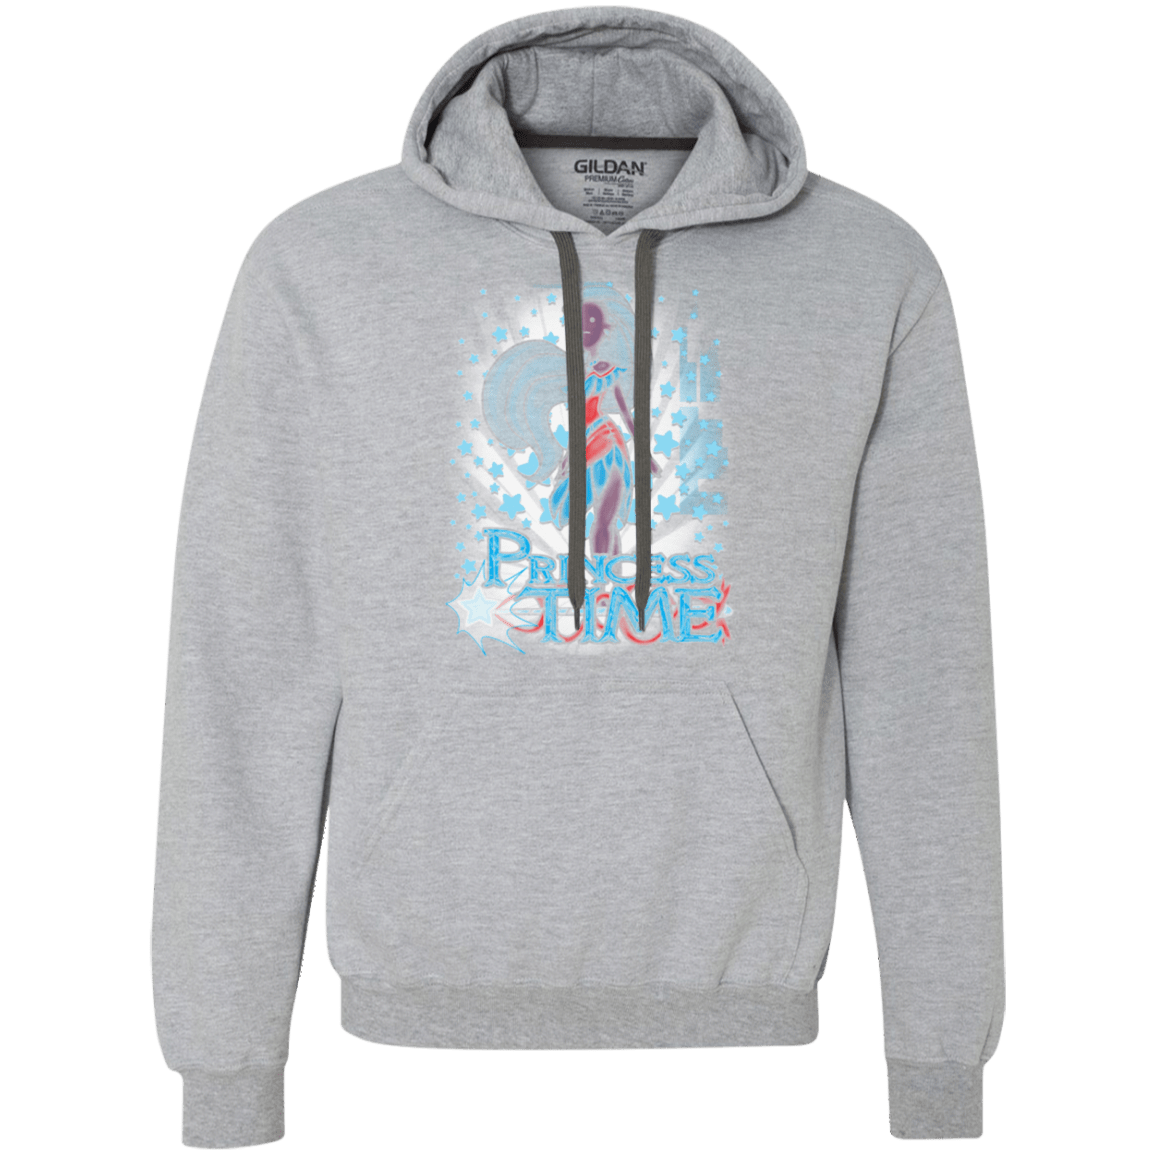 Sweatshirts Sport Grey / Small Princess Time Pocahontas Premium Fleece Hoodie